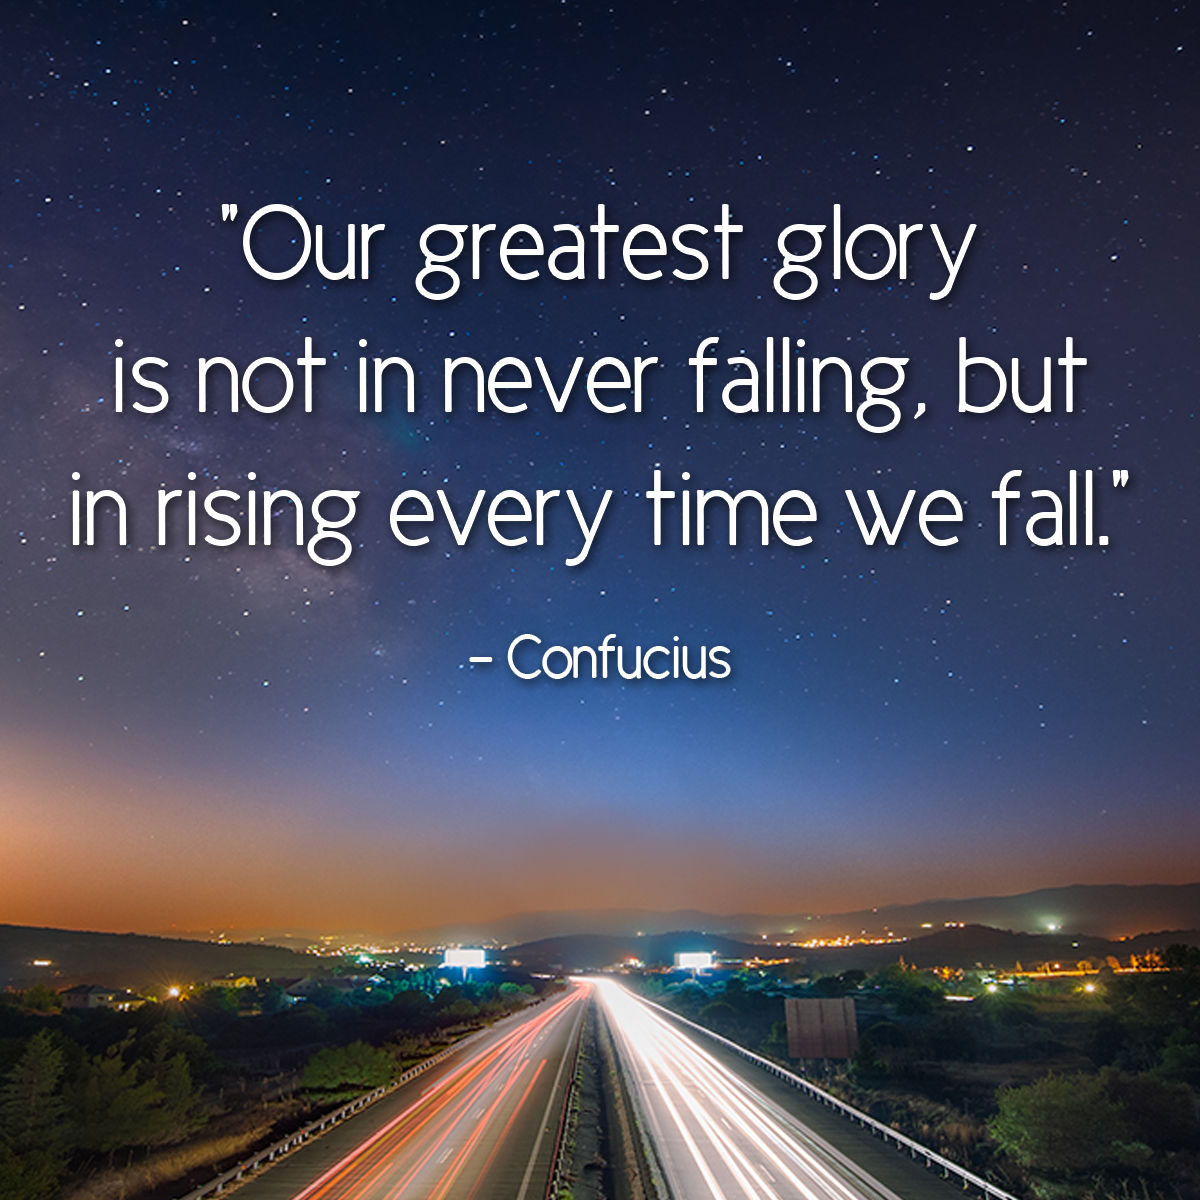 Spiritual Uplifting Quotes: Our Greatest Glory Is Not In Never Falling, But In Rising